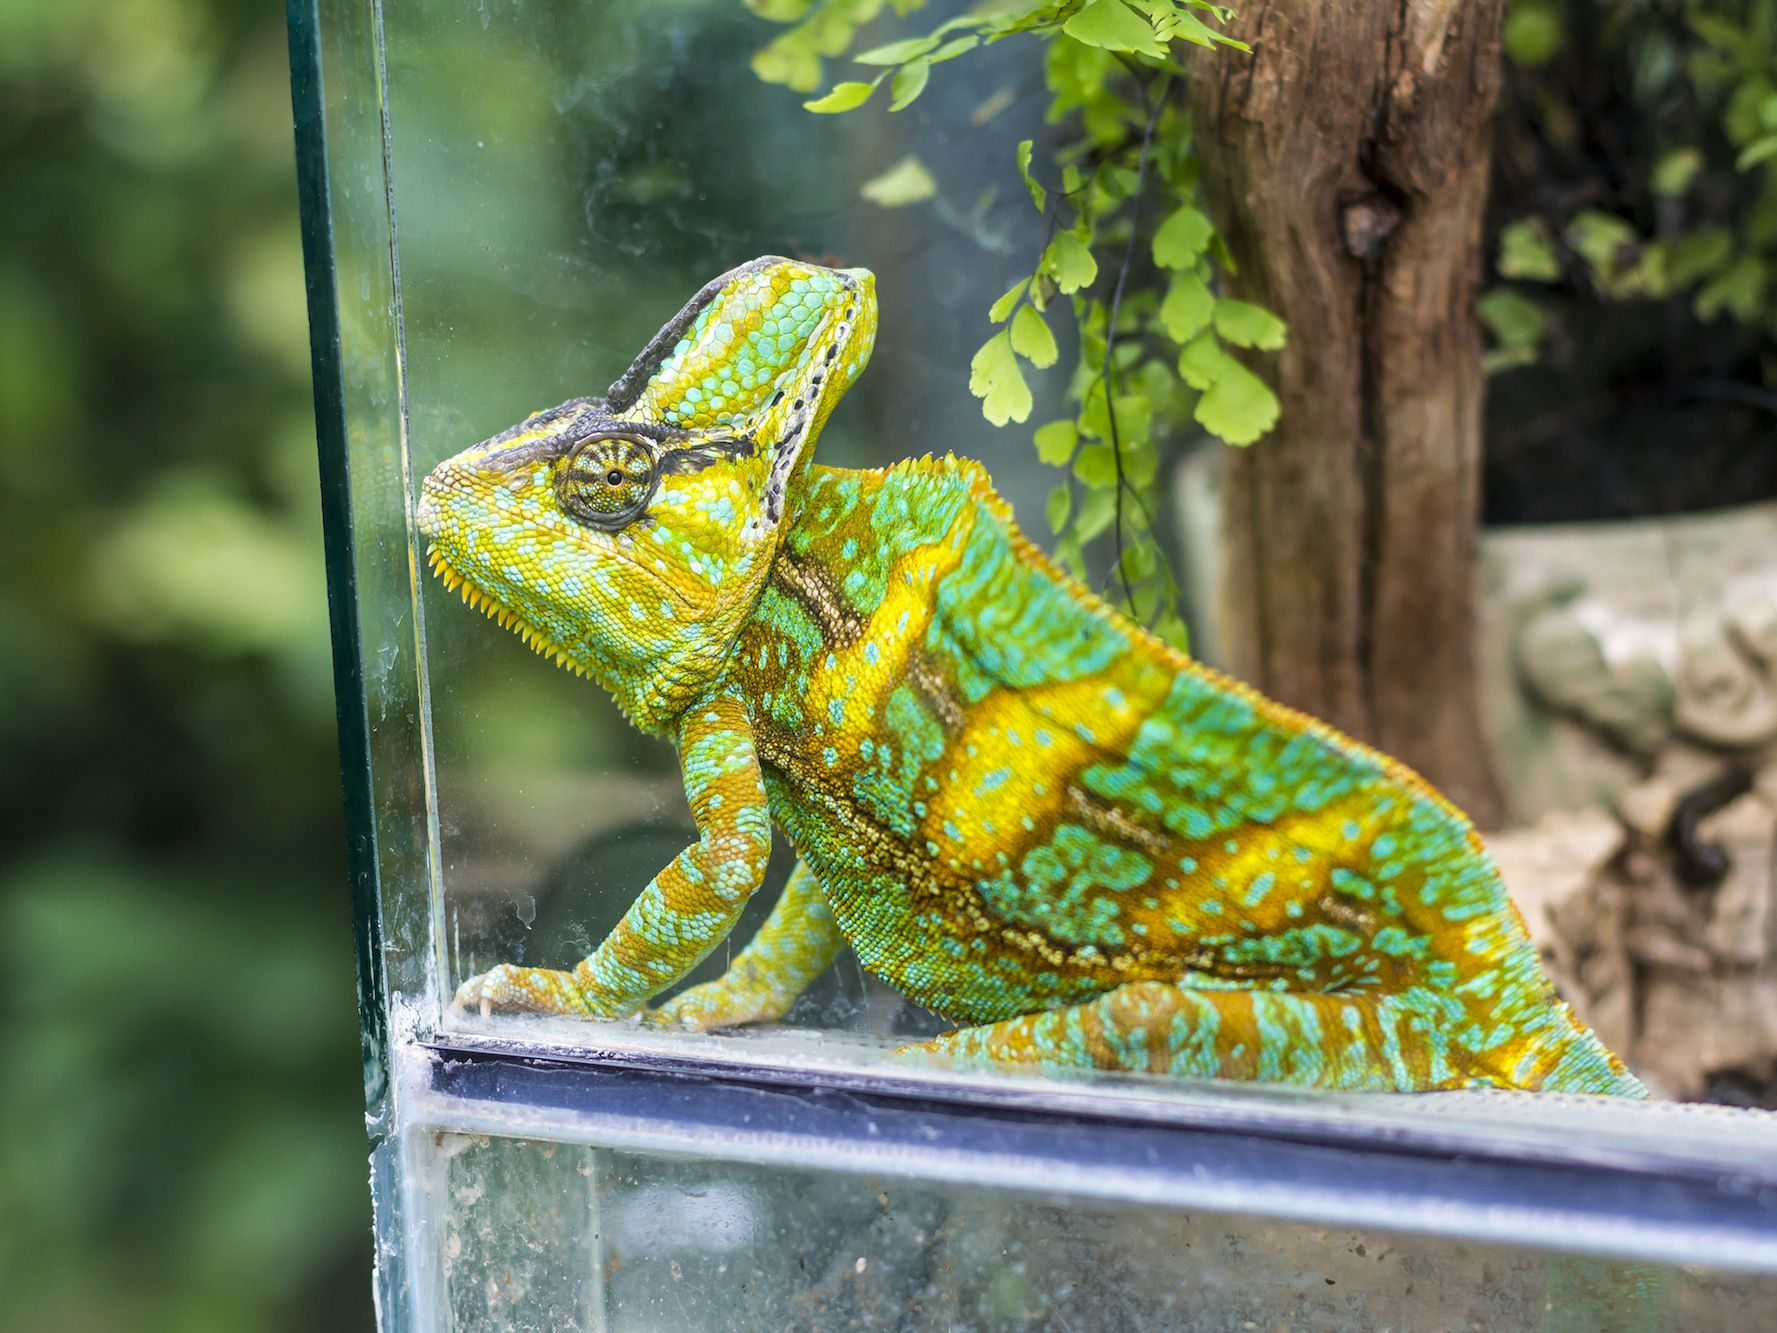 Live Terrarium Plants With Reptiles And Amphibians